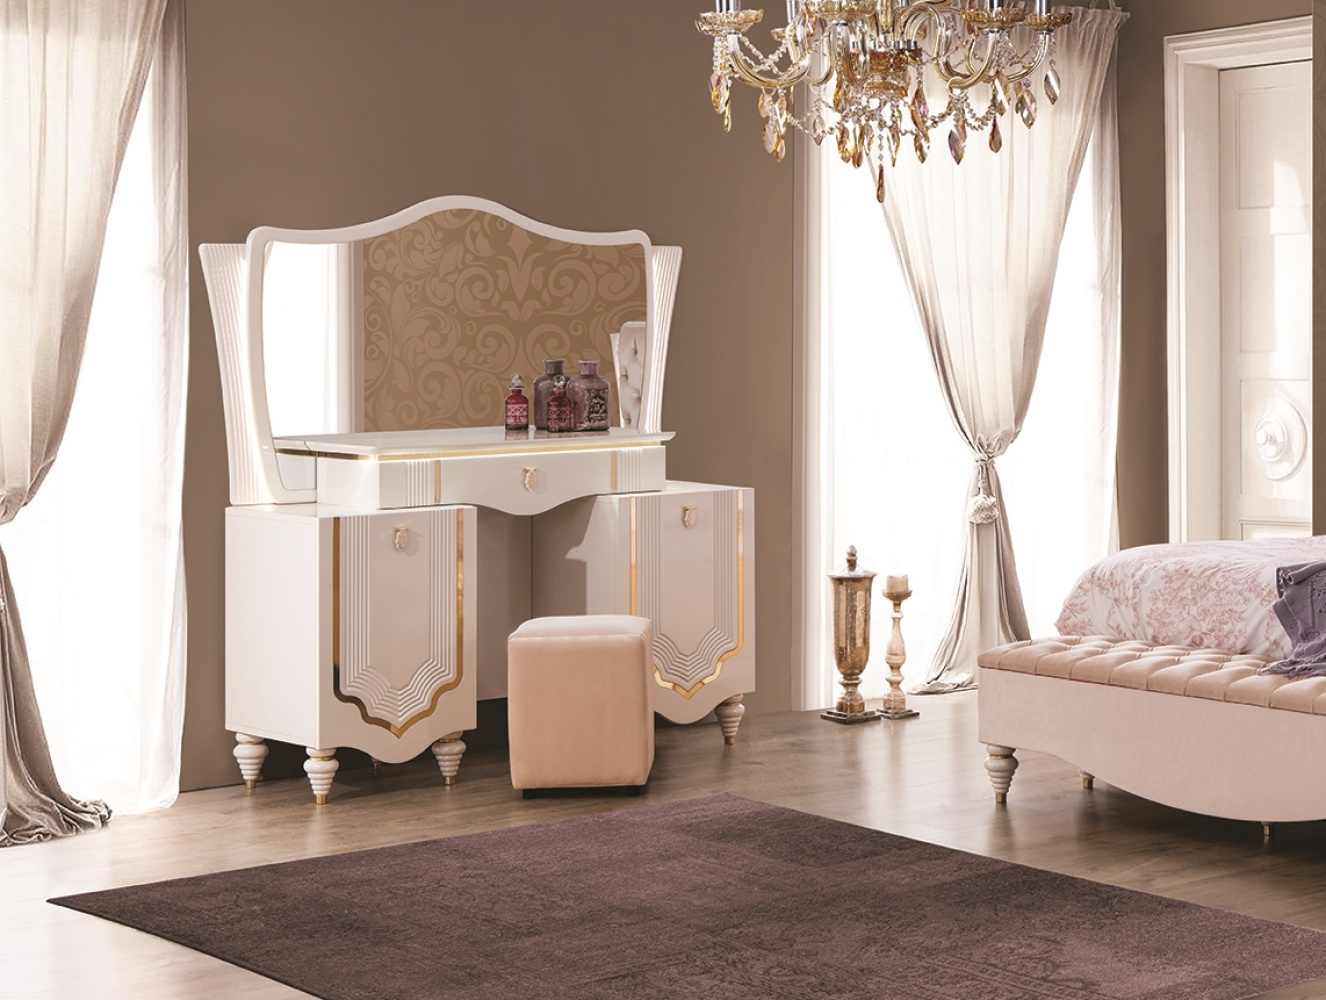 kommode annelore in barock stil wei gold kaufen bei m bel lux. Black Bedroom Furniture Sets. Home Design Ideas